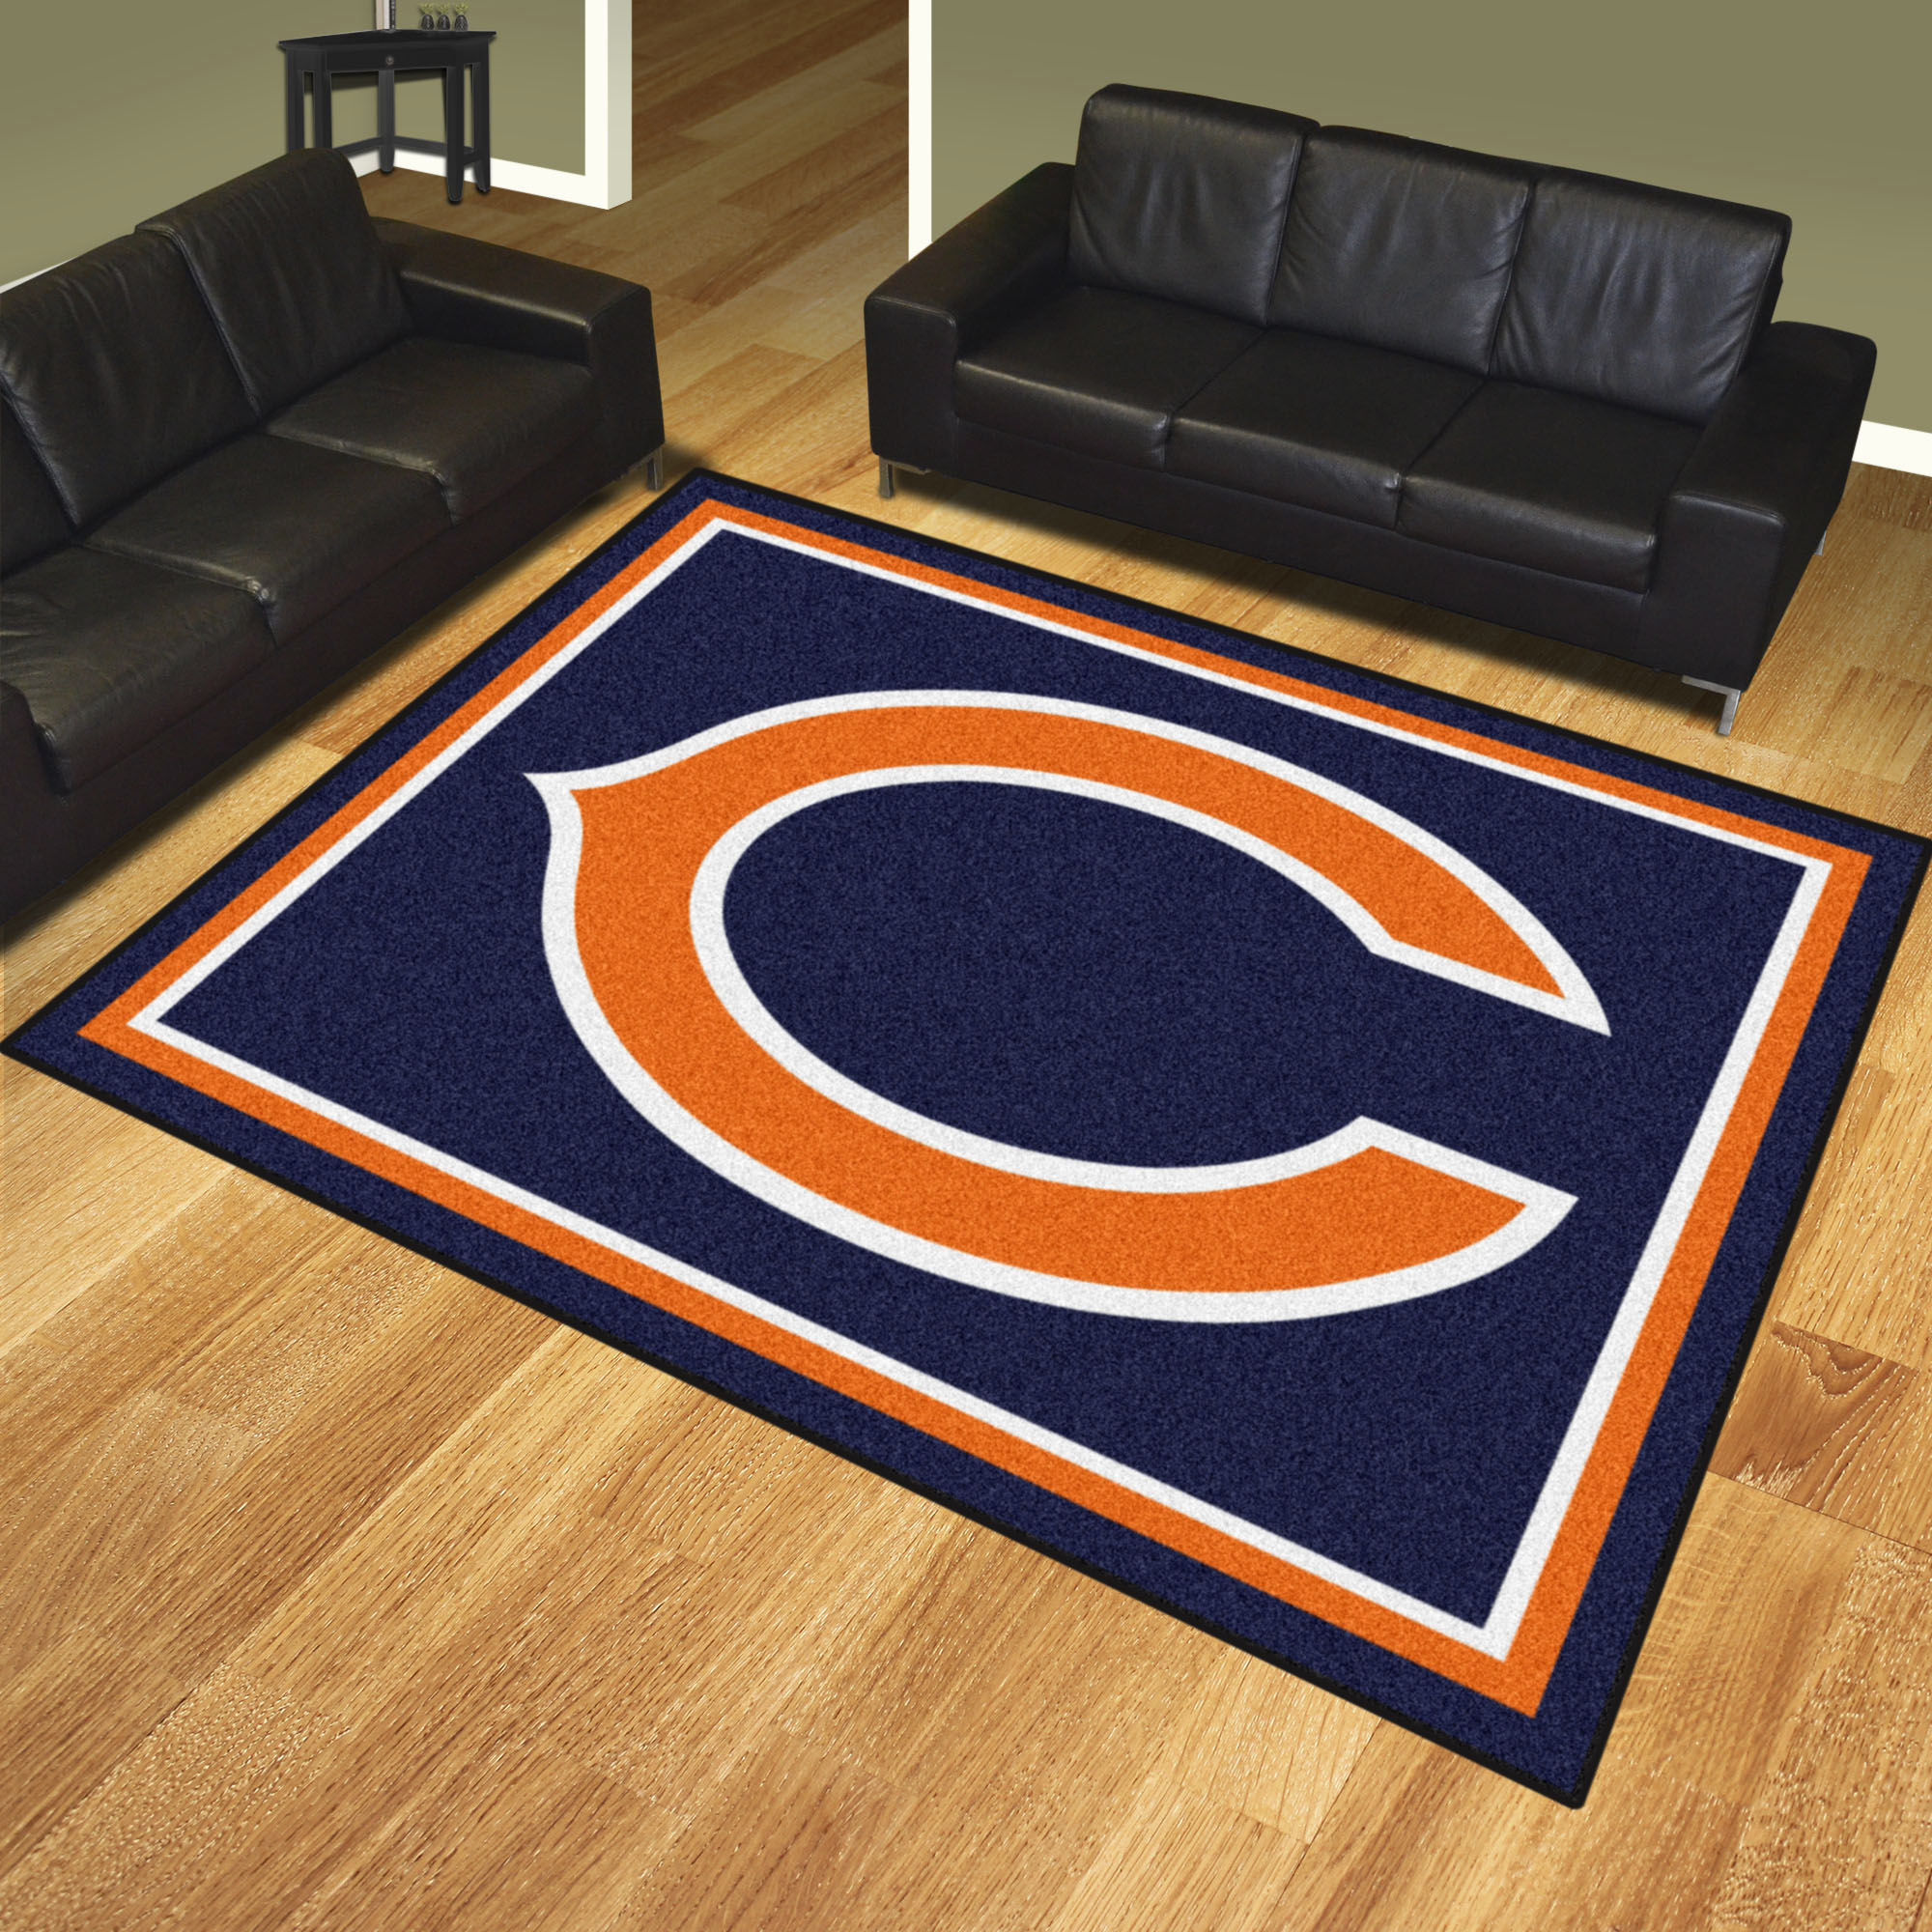 Chicago Bears Ultra Plush 8x10 Area Rug